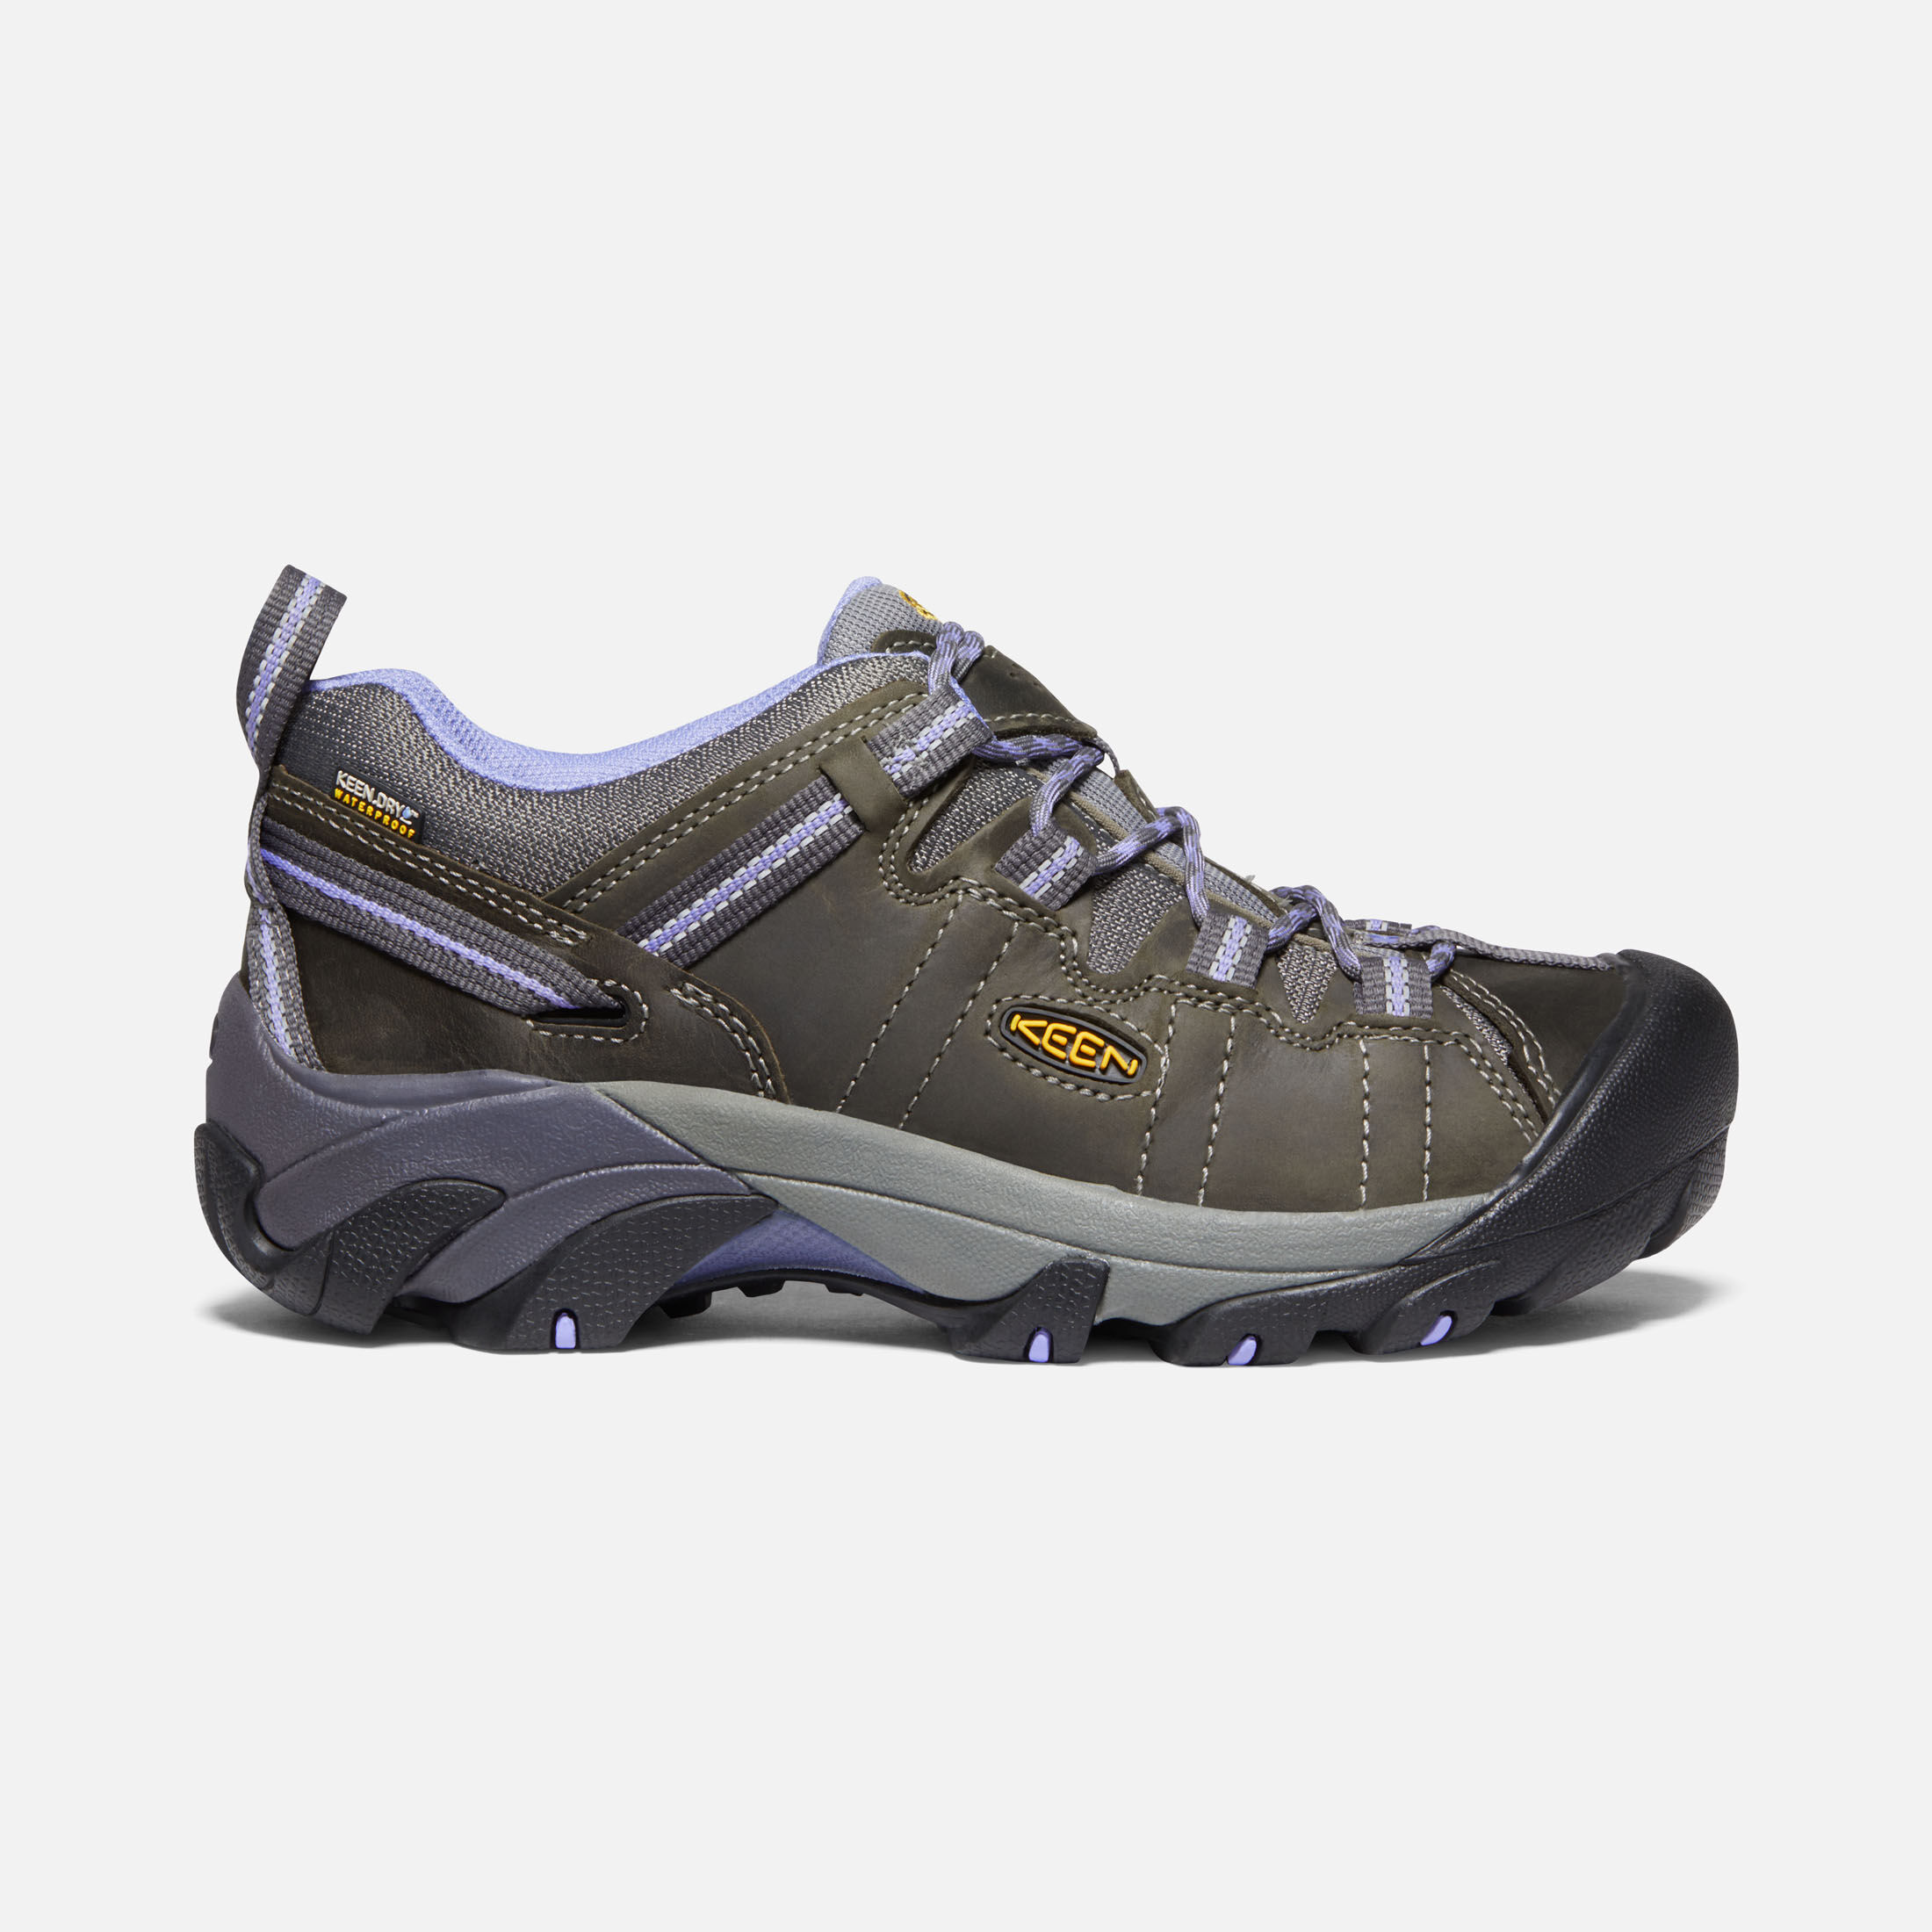 20182017 Outdoor KEEN Womens Targhee II Hiking Shoes Best Deals